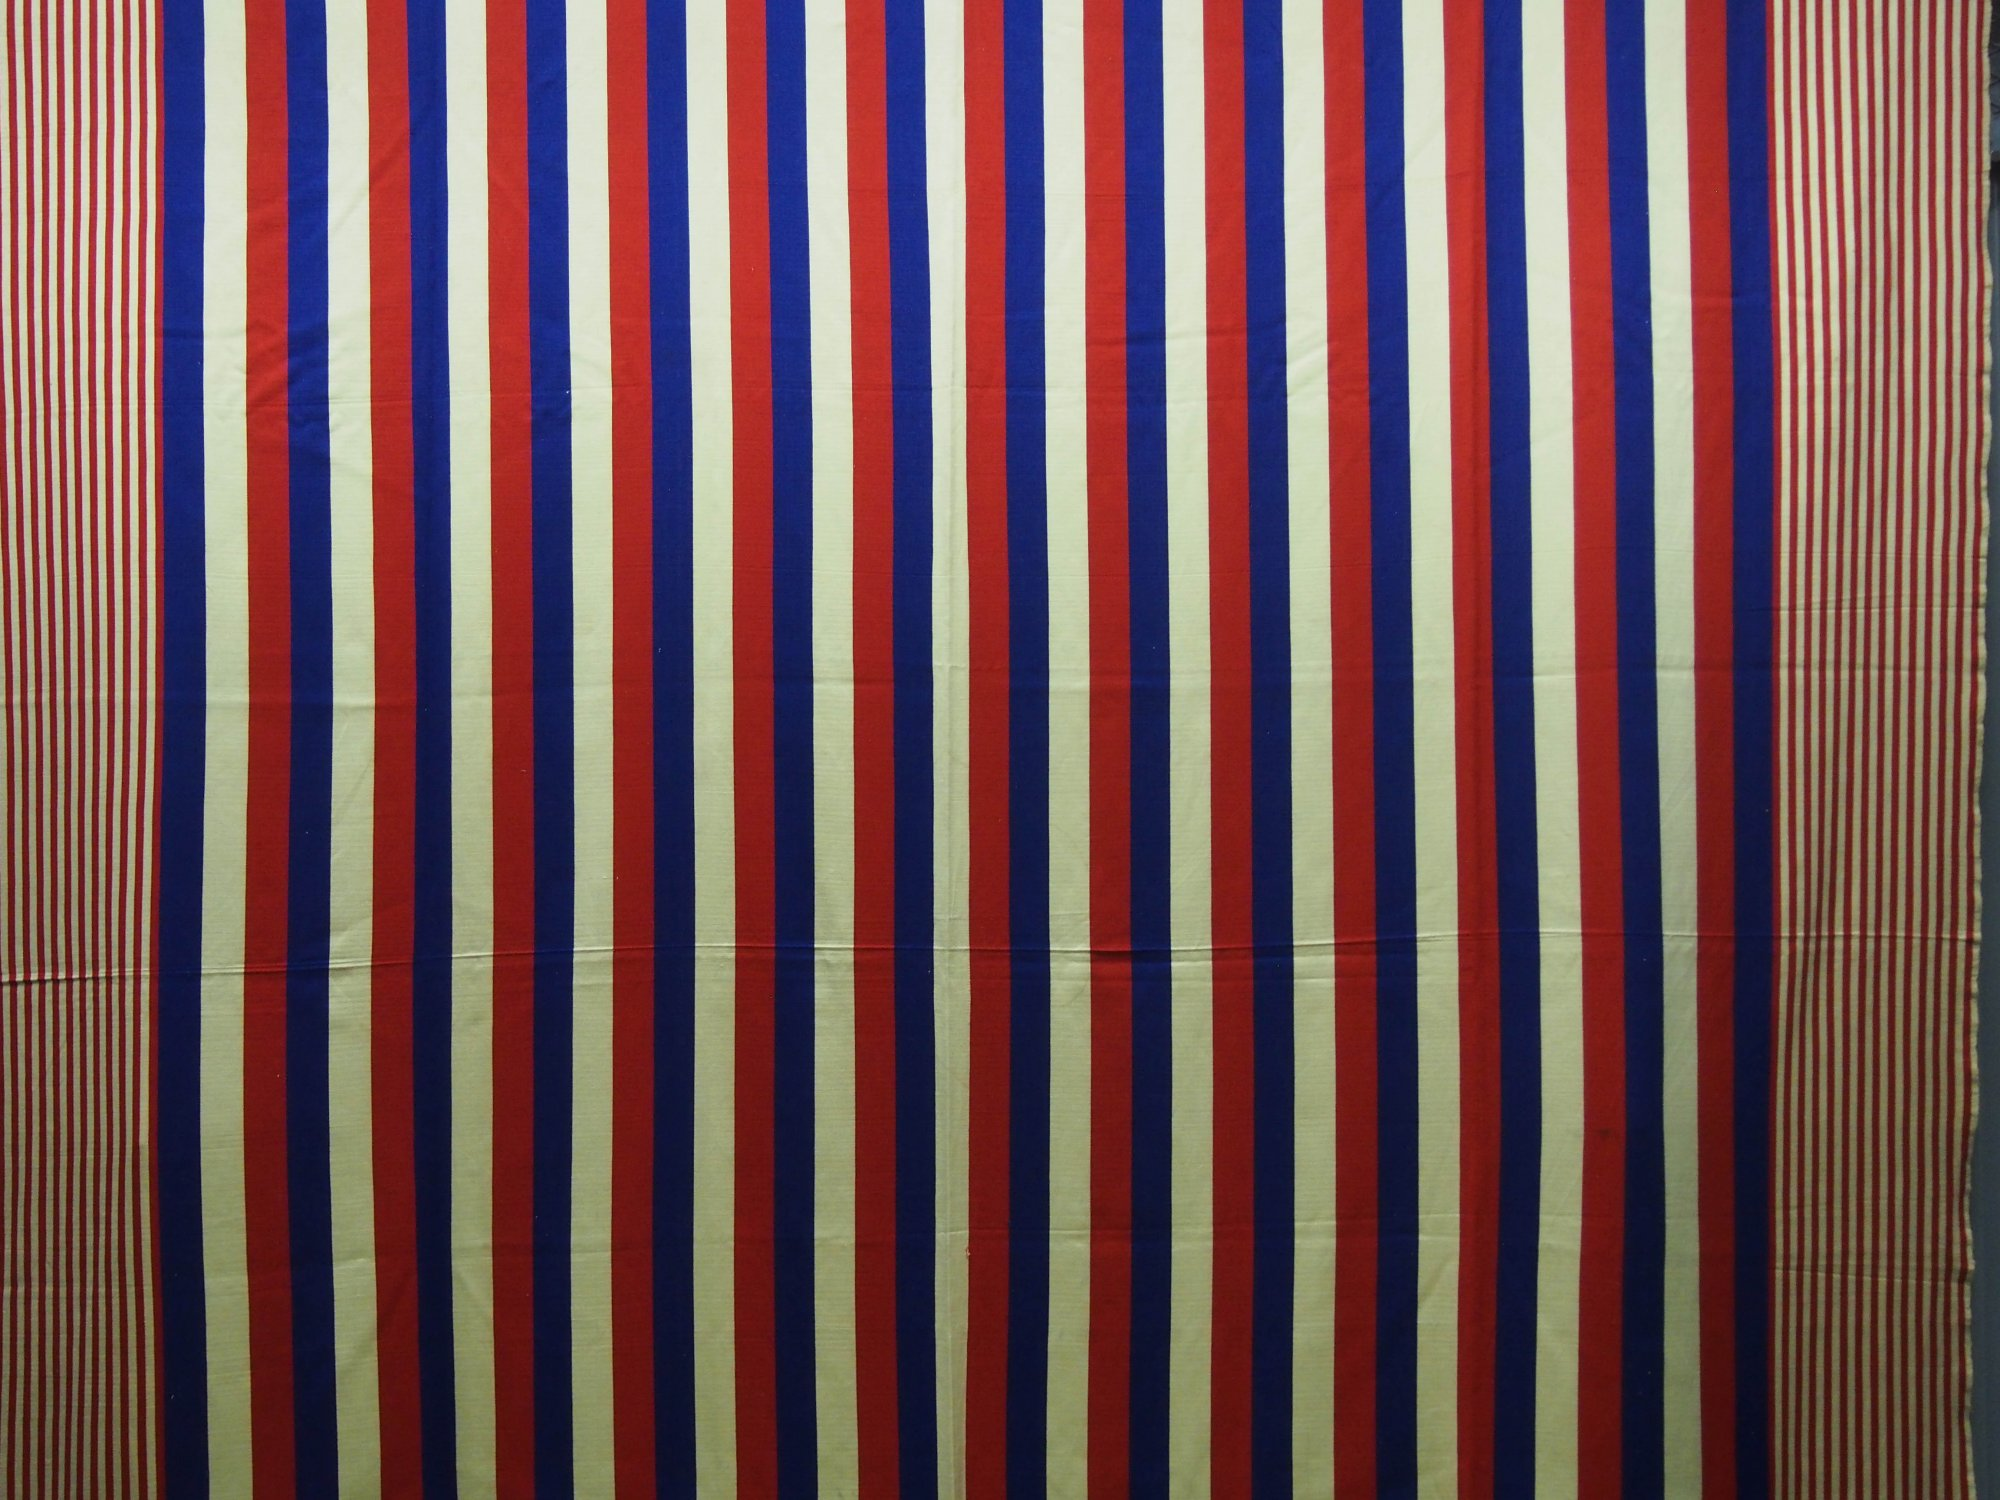 RED WHITE BLUE STRIPED FINE BLANKET